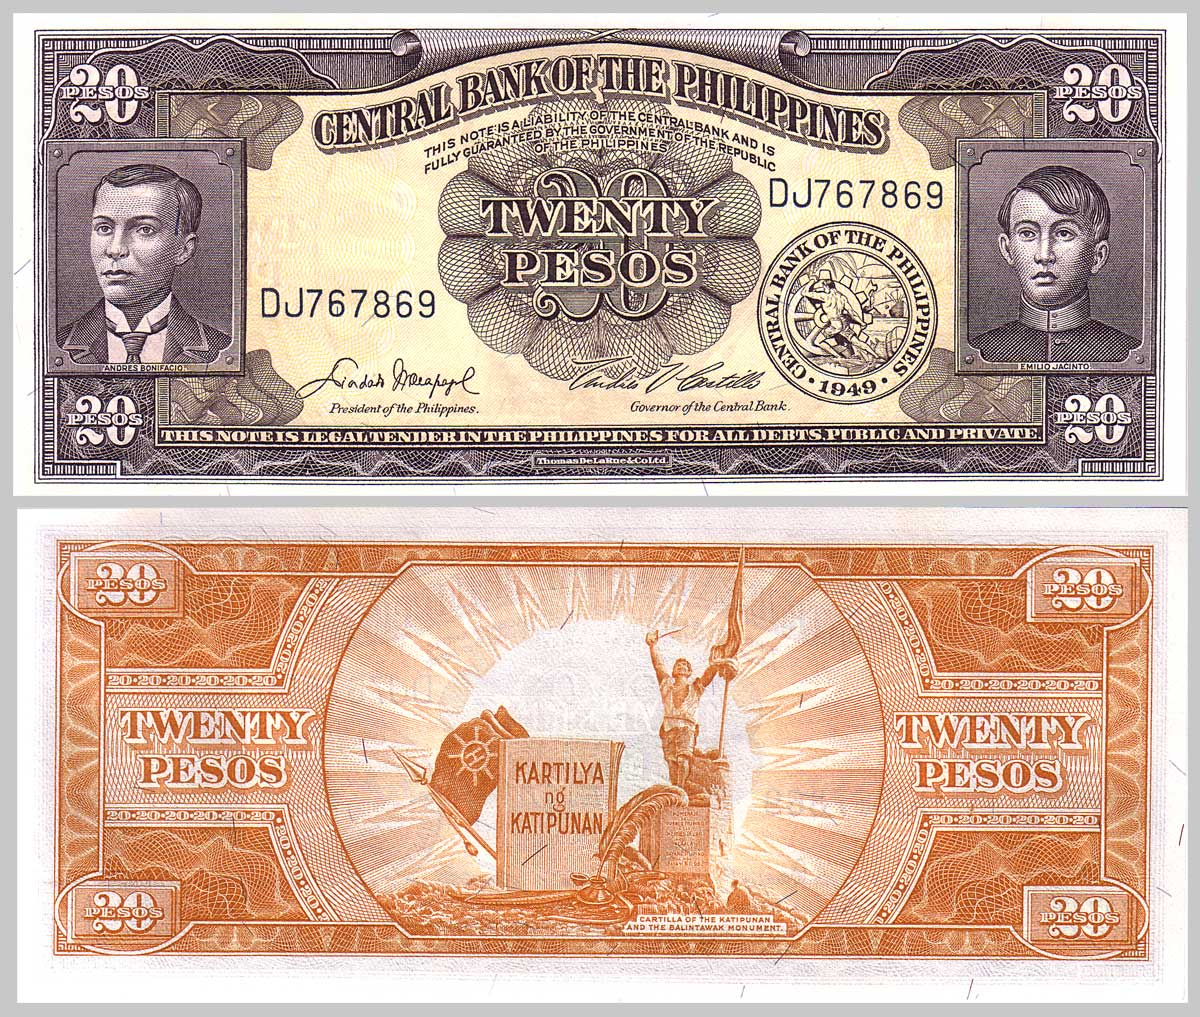 http://www.panix.com/~clay/currency/PH-137d.jpg